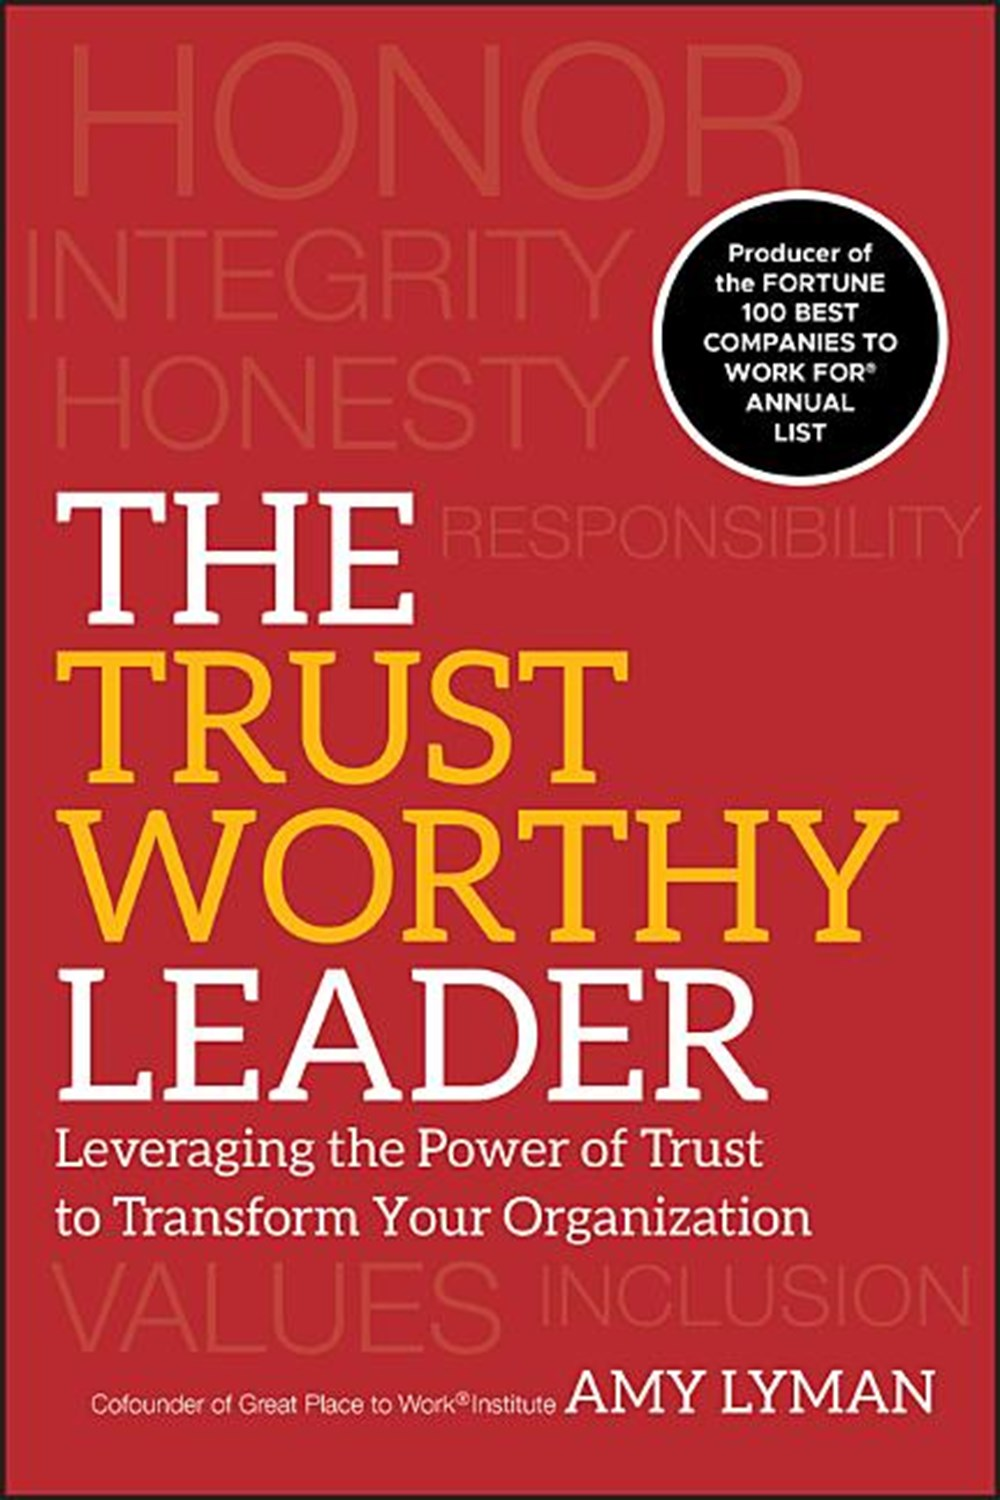 Trustworthy Leader Leveraging the Power of Trust to Transform Your Organization